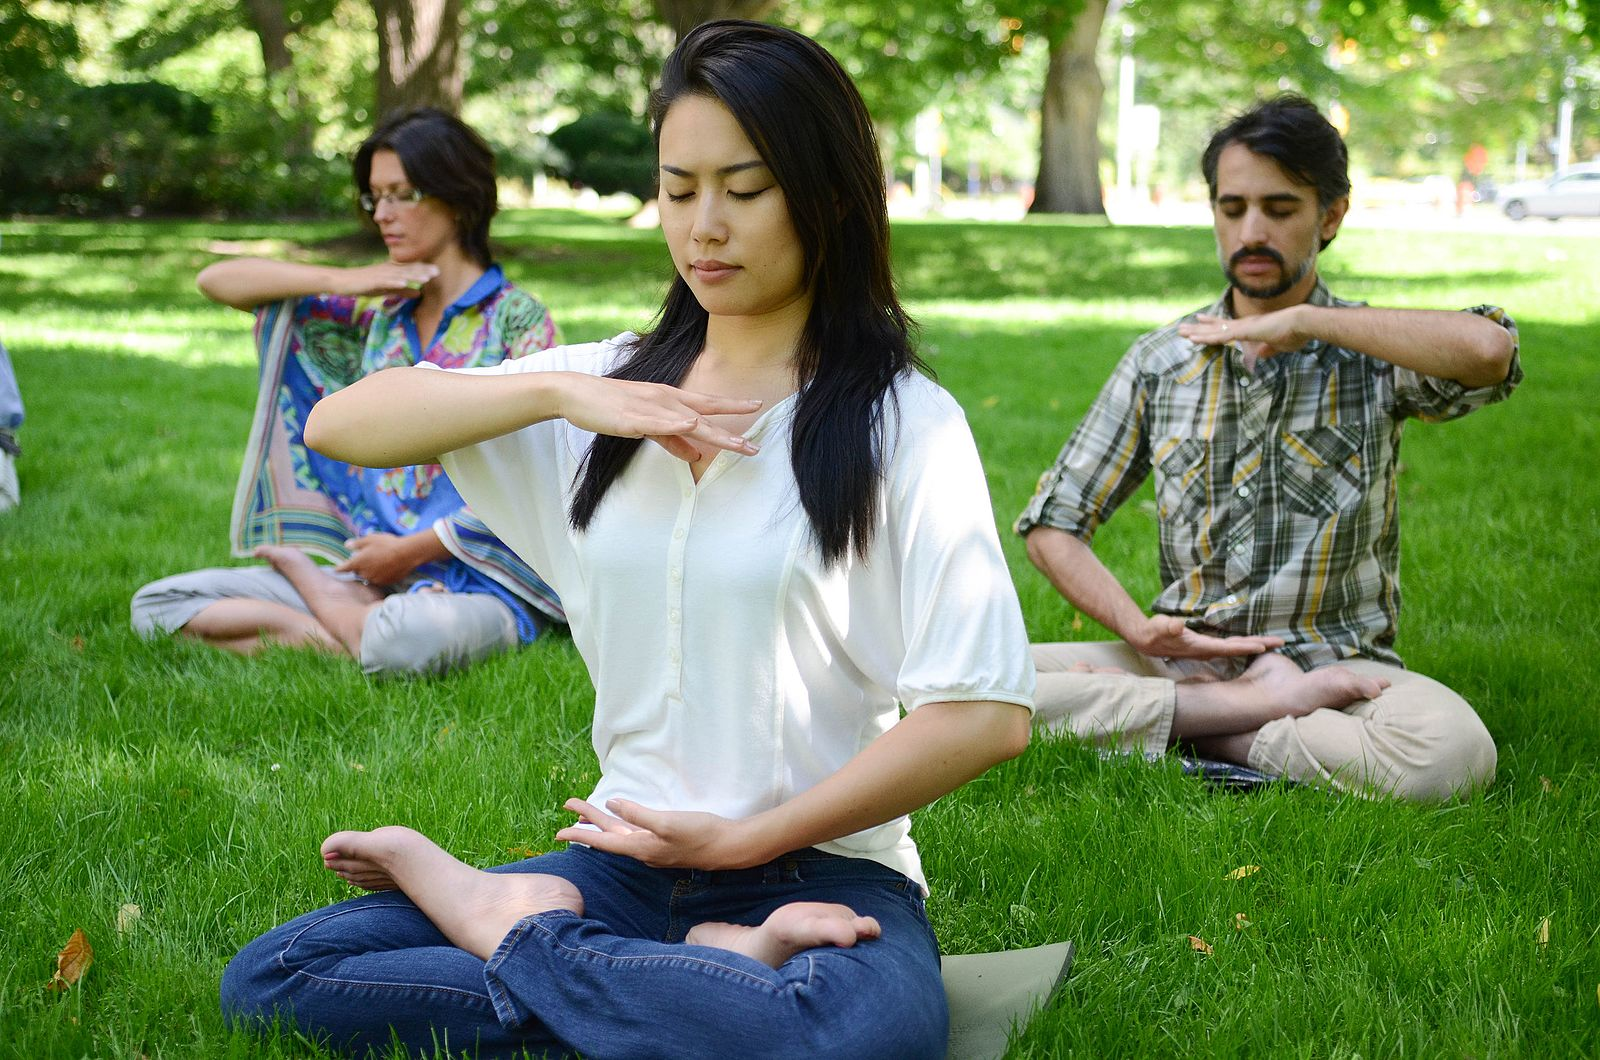 People who practice Falun Gong (also known as Falun Dafa) doing the sitting meditation in a park in Canada. In China, people are jailed, tortured, or even killed for peacefully practicing Falun Gong.